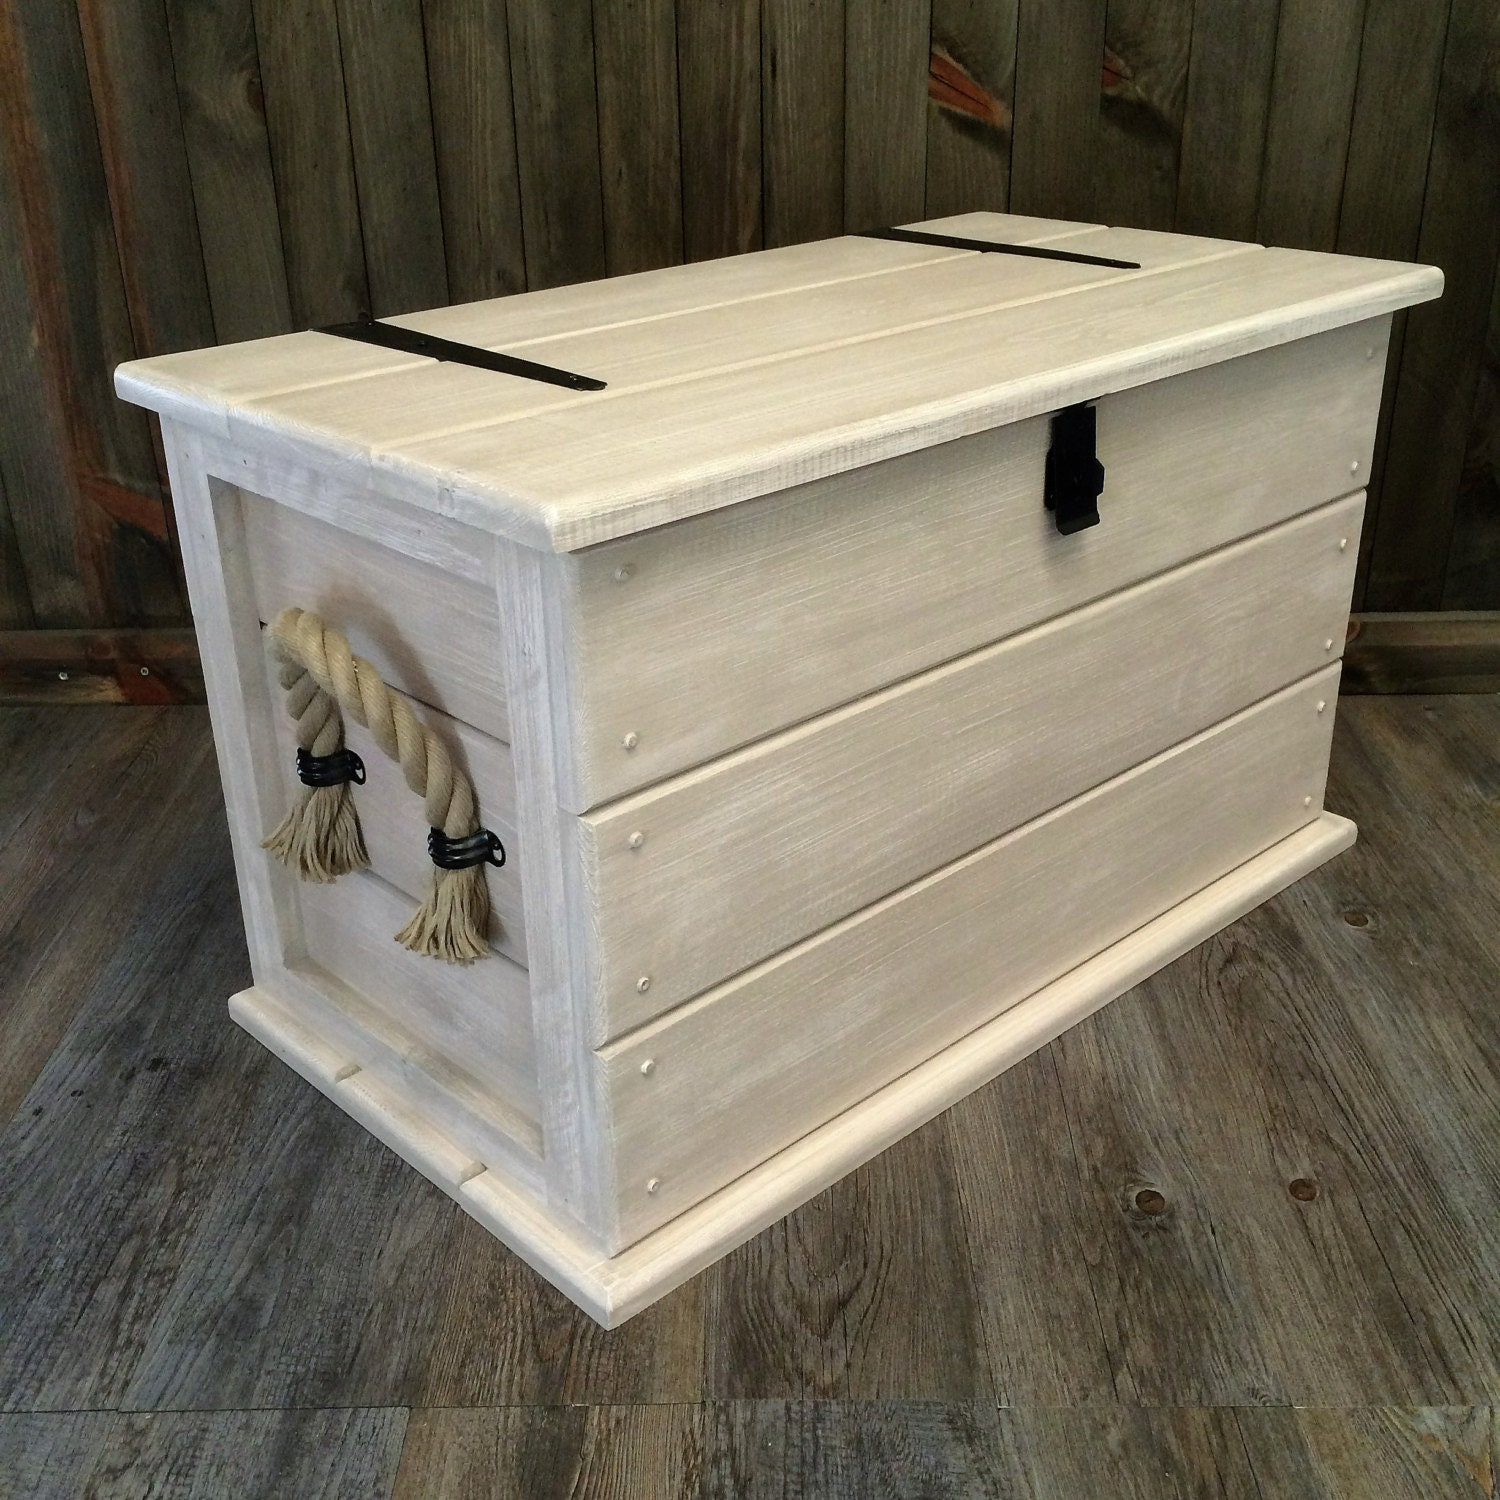 handmade solid pine shabby chic storage trunk coffee table. Black Bedroom Furniture Sets. Home Design Ideas